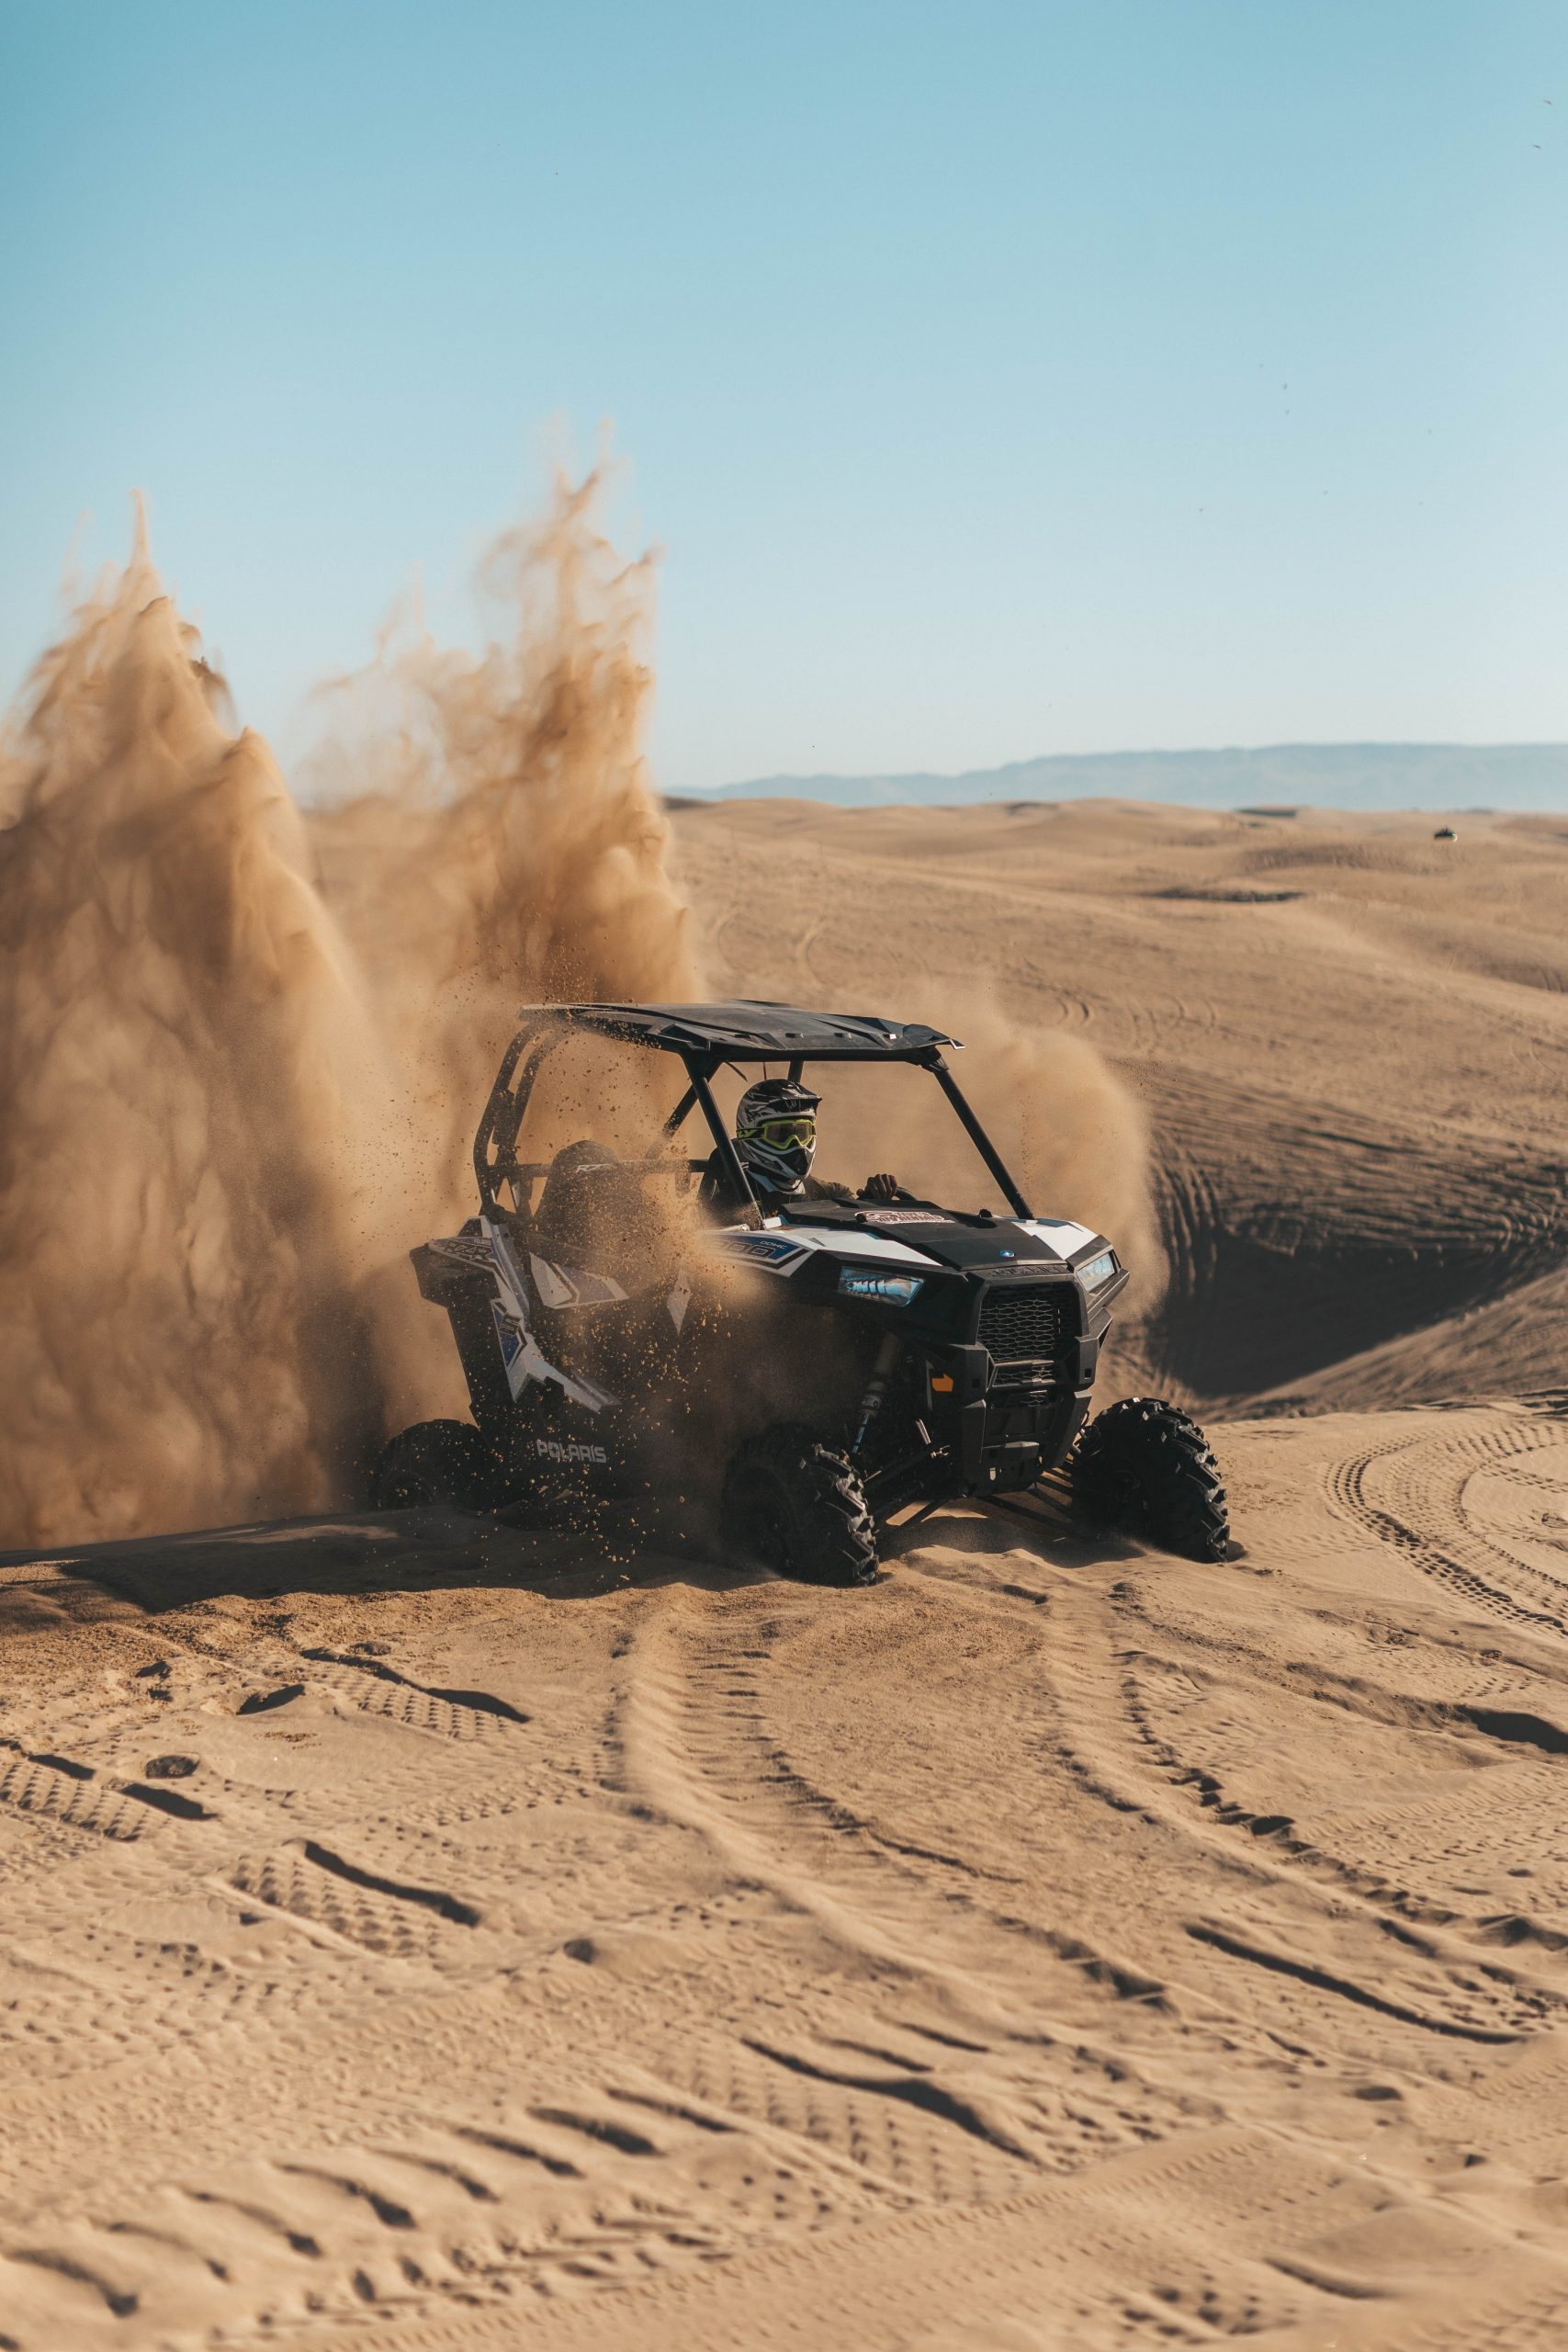 gallery image for Shared Quad Biking Activity Palm Oasis Marrakech